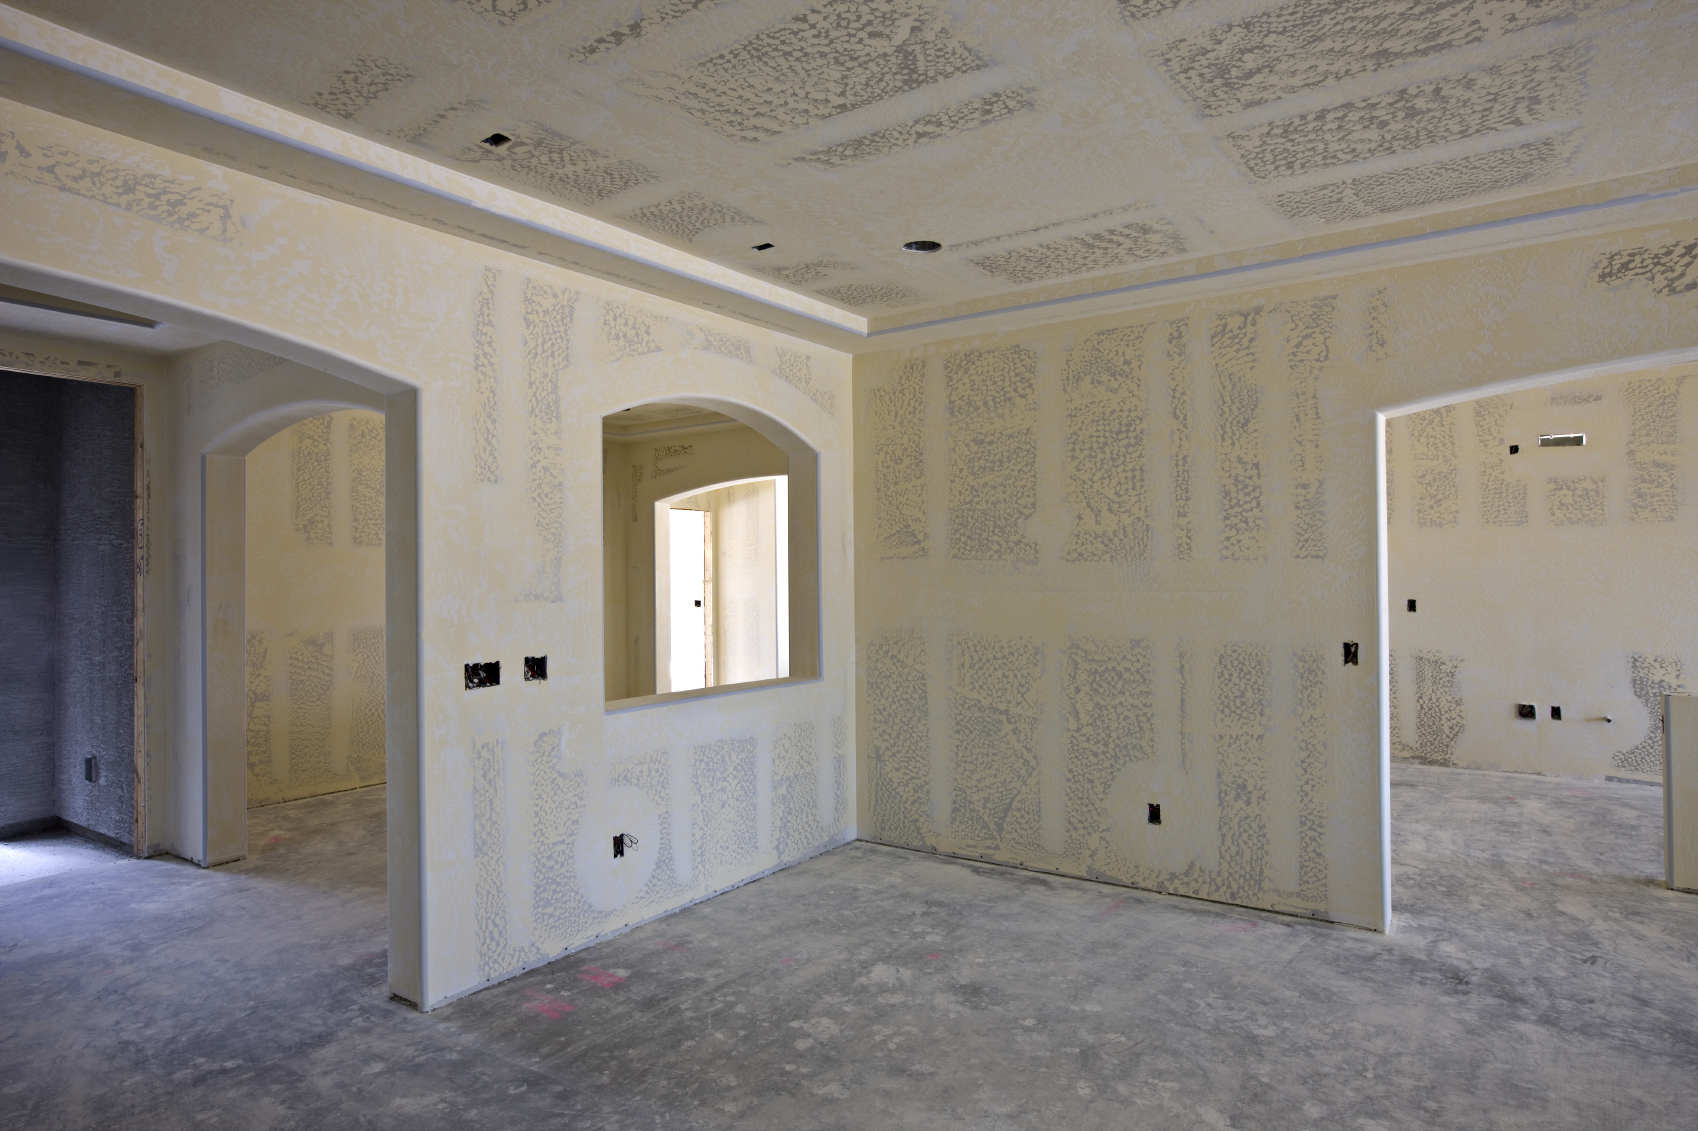 Drywall Gypsum Walls : Drywall and painting roofing experts inc